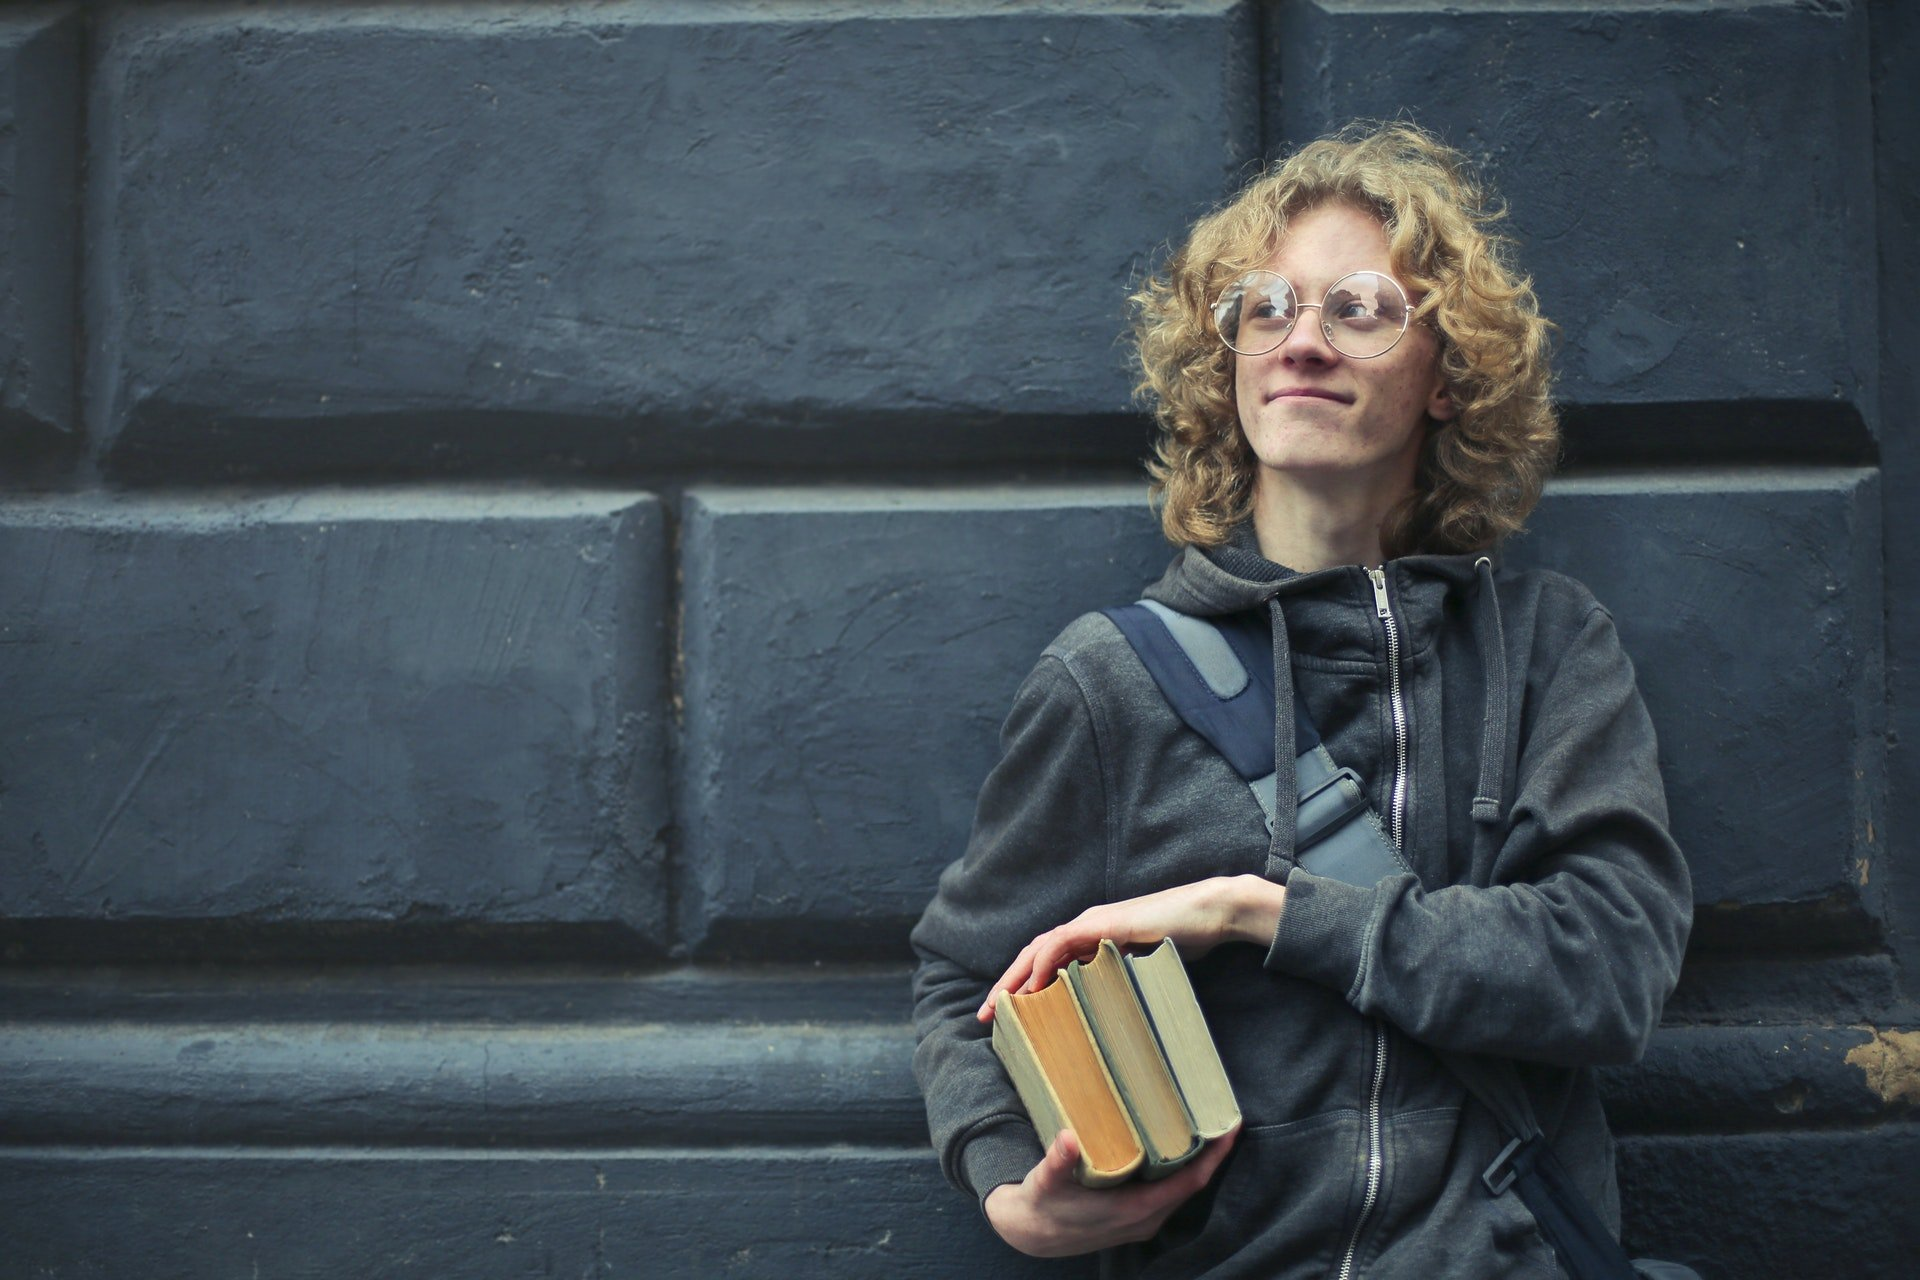 High school boy holding books and looking content in that moment.